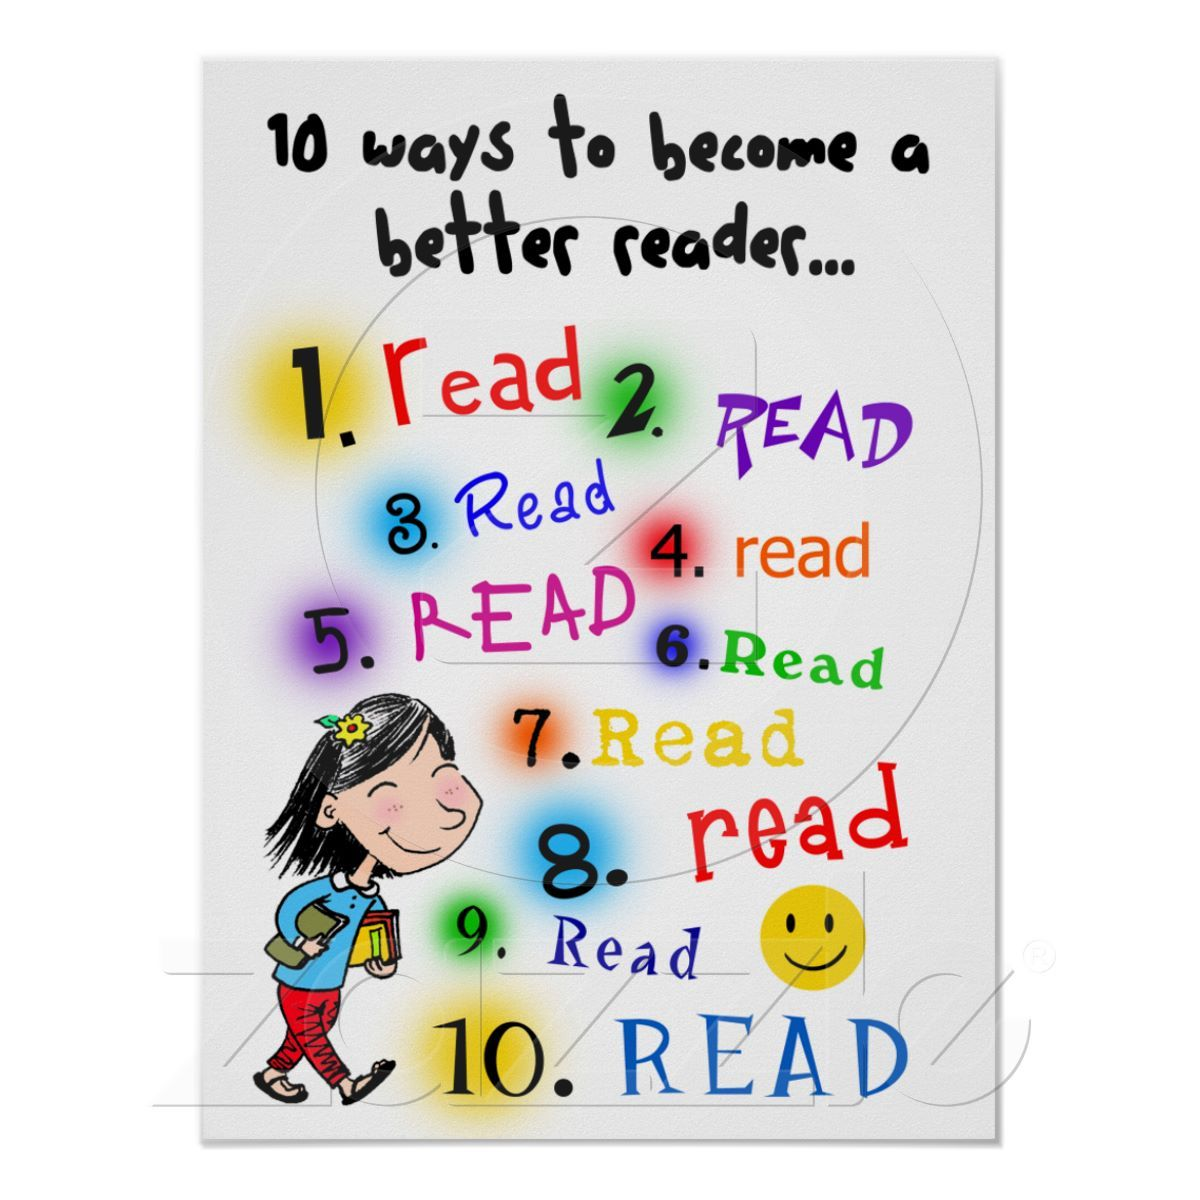 Better Reader Posters from Zazzle.com